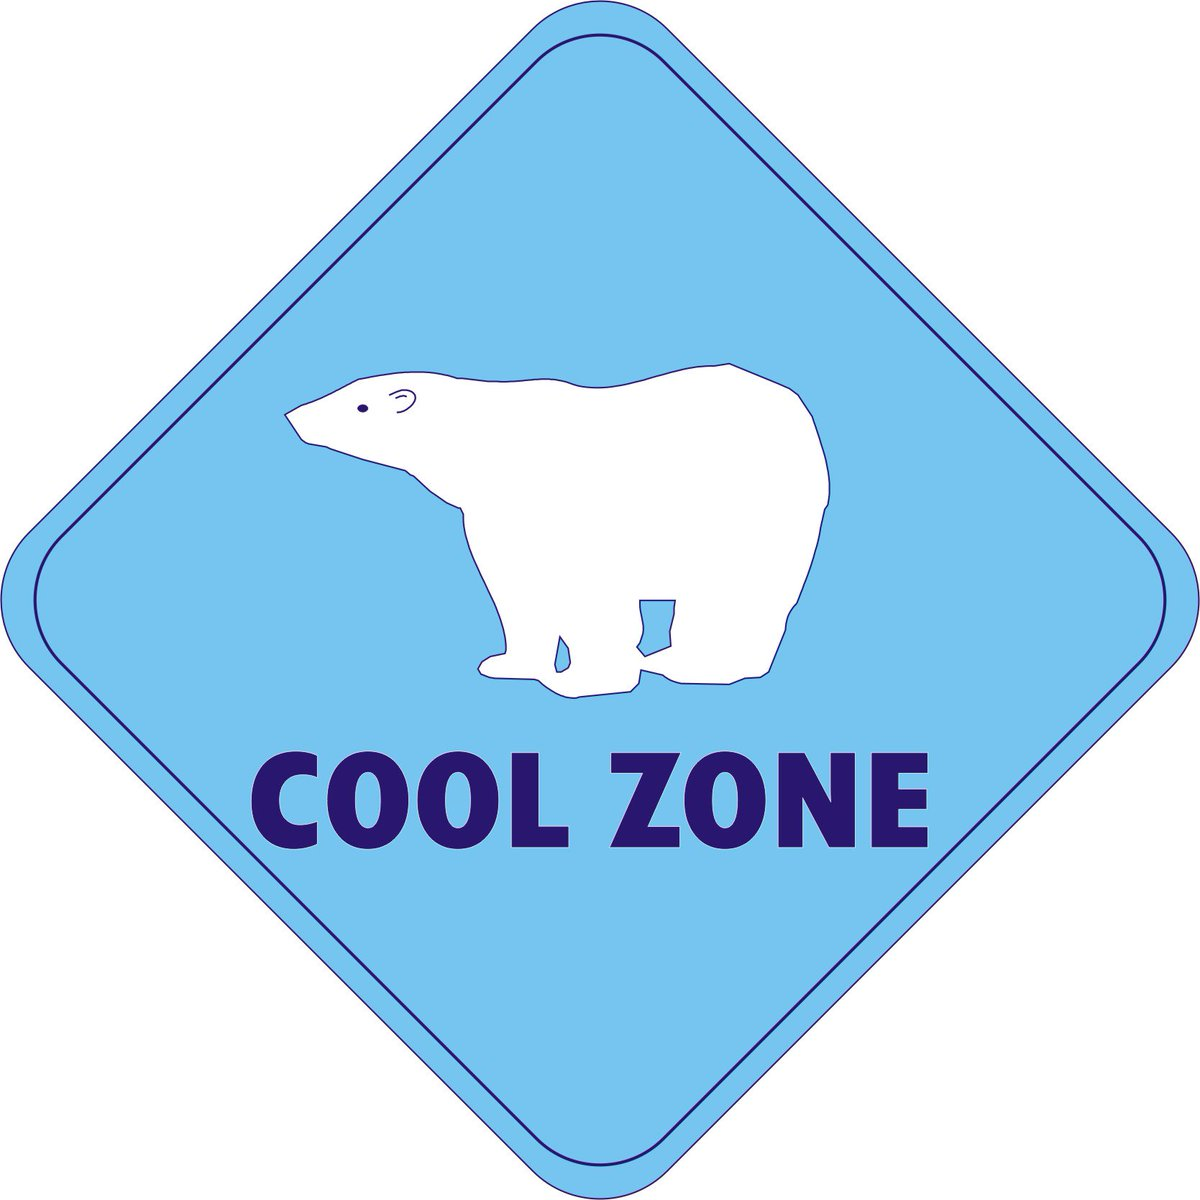 RT @SanDiegoCounty: Cool Zone hours were extended at 2 East County libraries